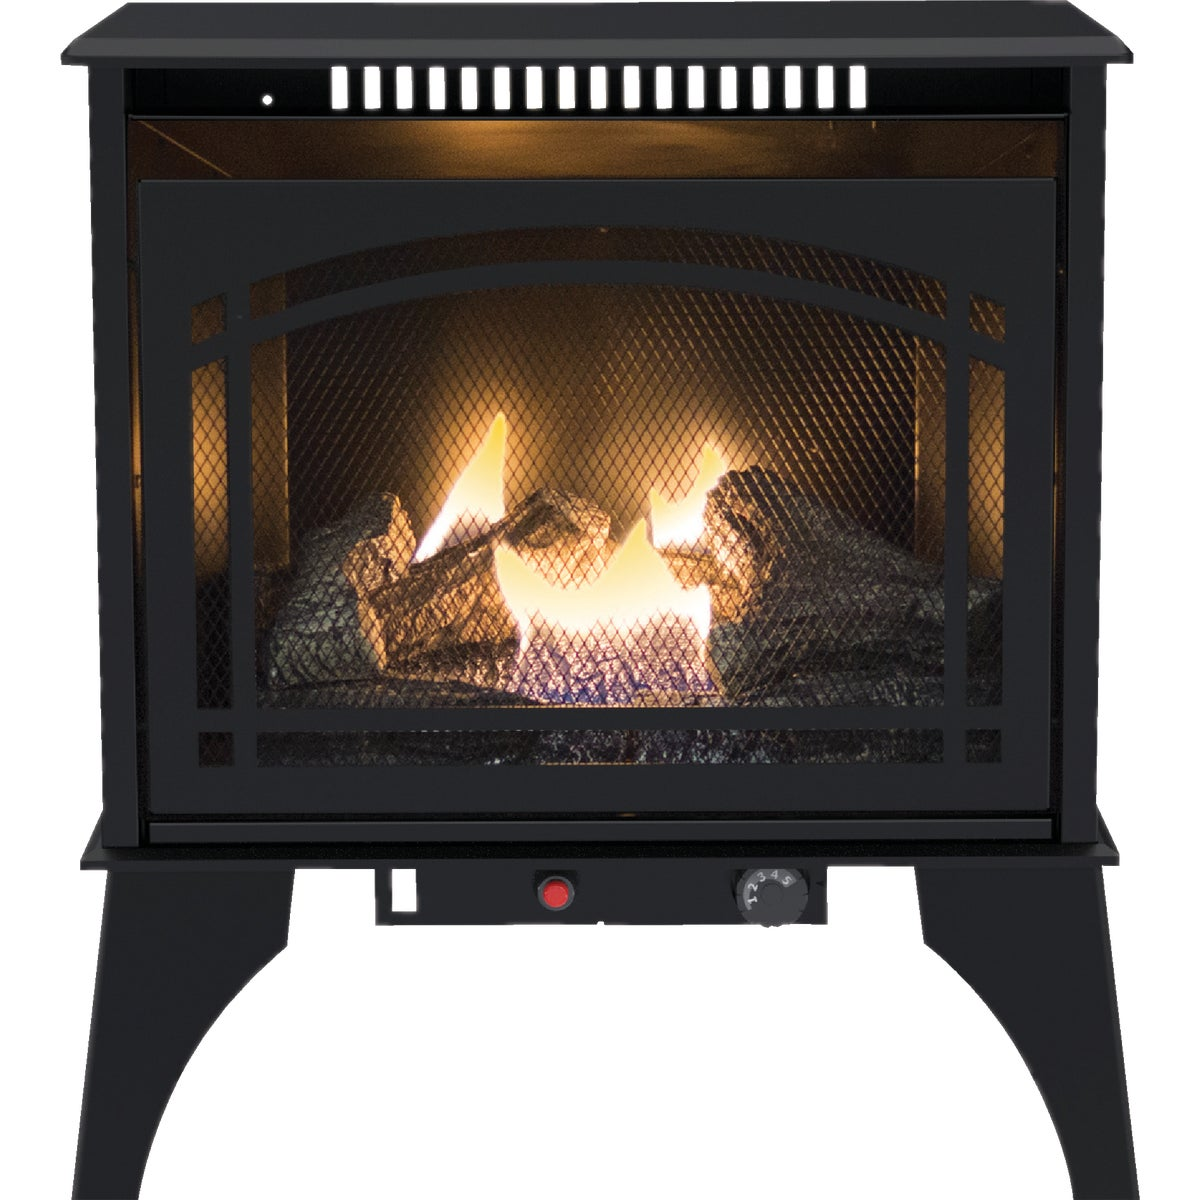 25K DUALFUEL TSTAT STOVE - GSD3033 by World Marketing